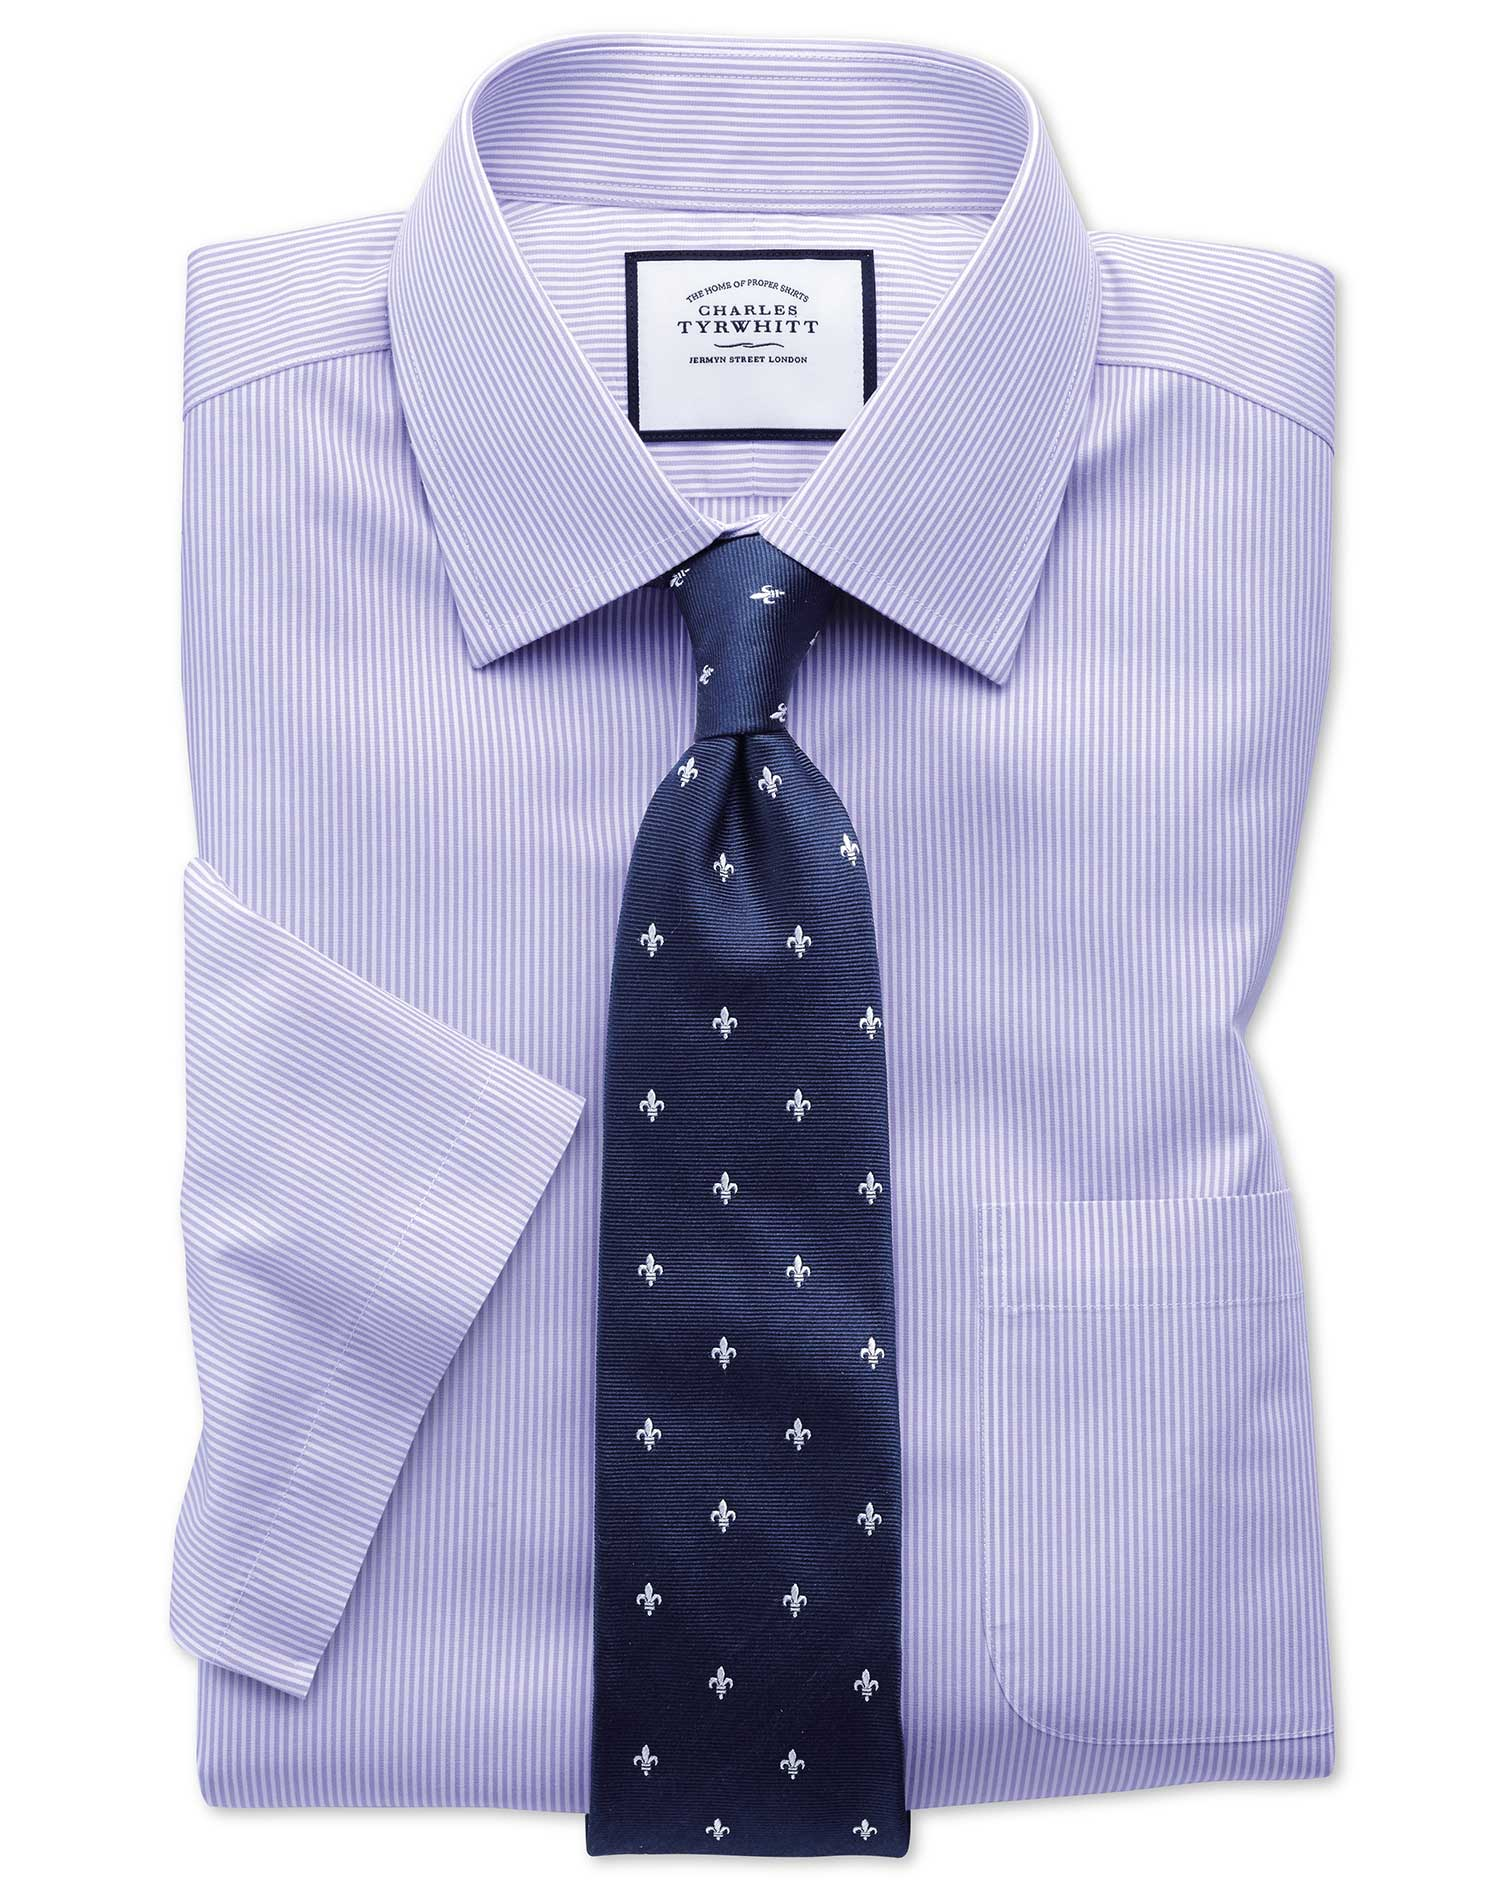 Slim Fit Non-Iron Bengal Stripe Short Sleeve Lilac Cotton Formal Shirt Size 18/Short by Charles Tyrw